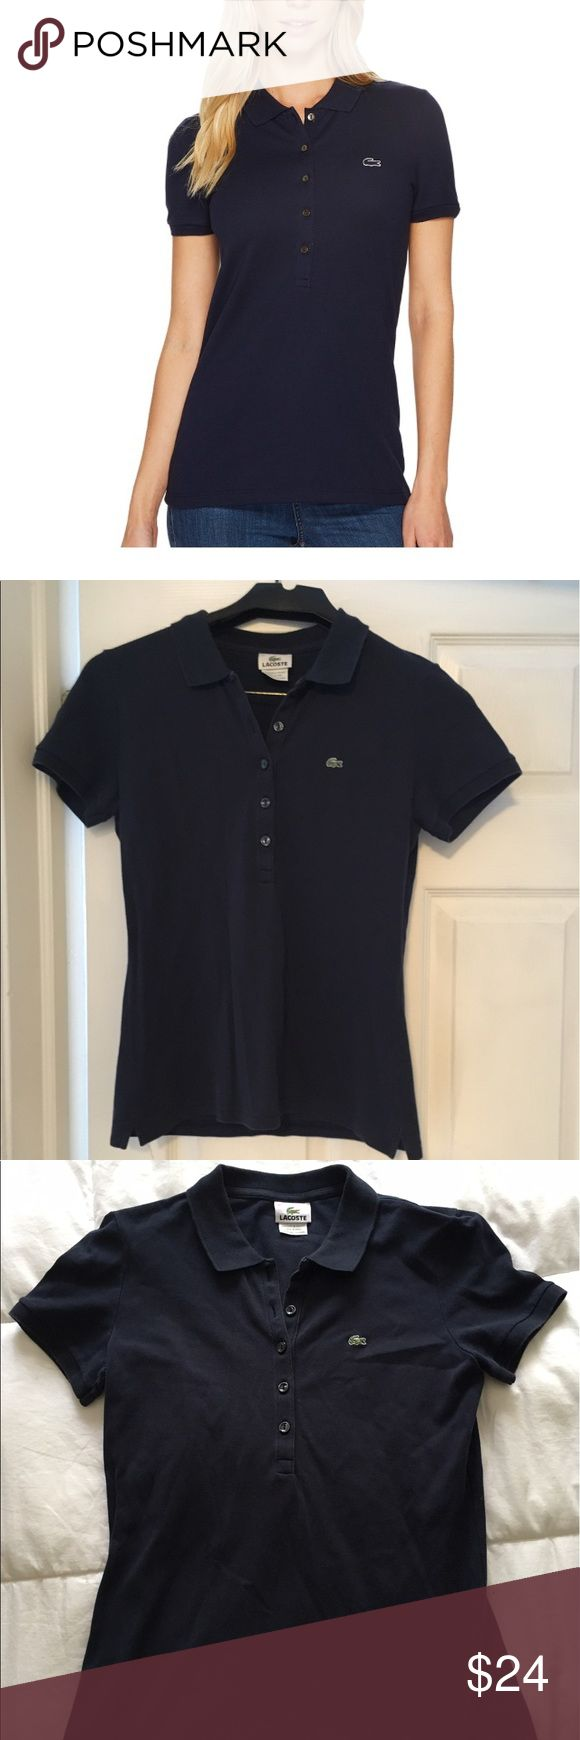 Lacoste Slim Fit Navy Ladies Polo Size 42. Great slim fitting stretch polo in navy. Perfect give for sports like golf and tennis. Long placket and down over hip (covers waistline). Fits like a small-medium. Minor visible wear and vintage shading - priced as such. Let me know if you have questions! Thanks for shopping 🌸. Lacoste Tops Tees - Short Sleeve